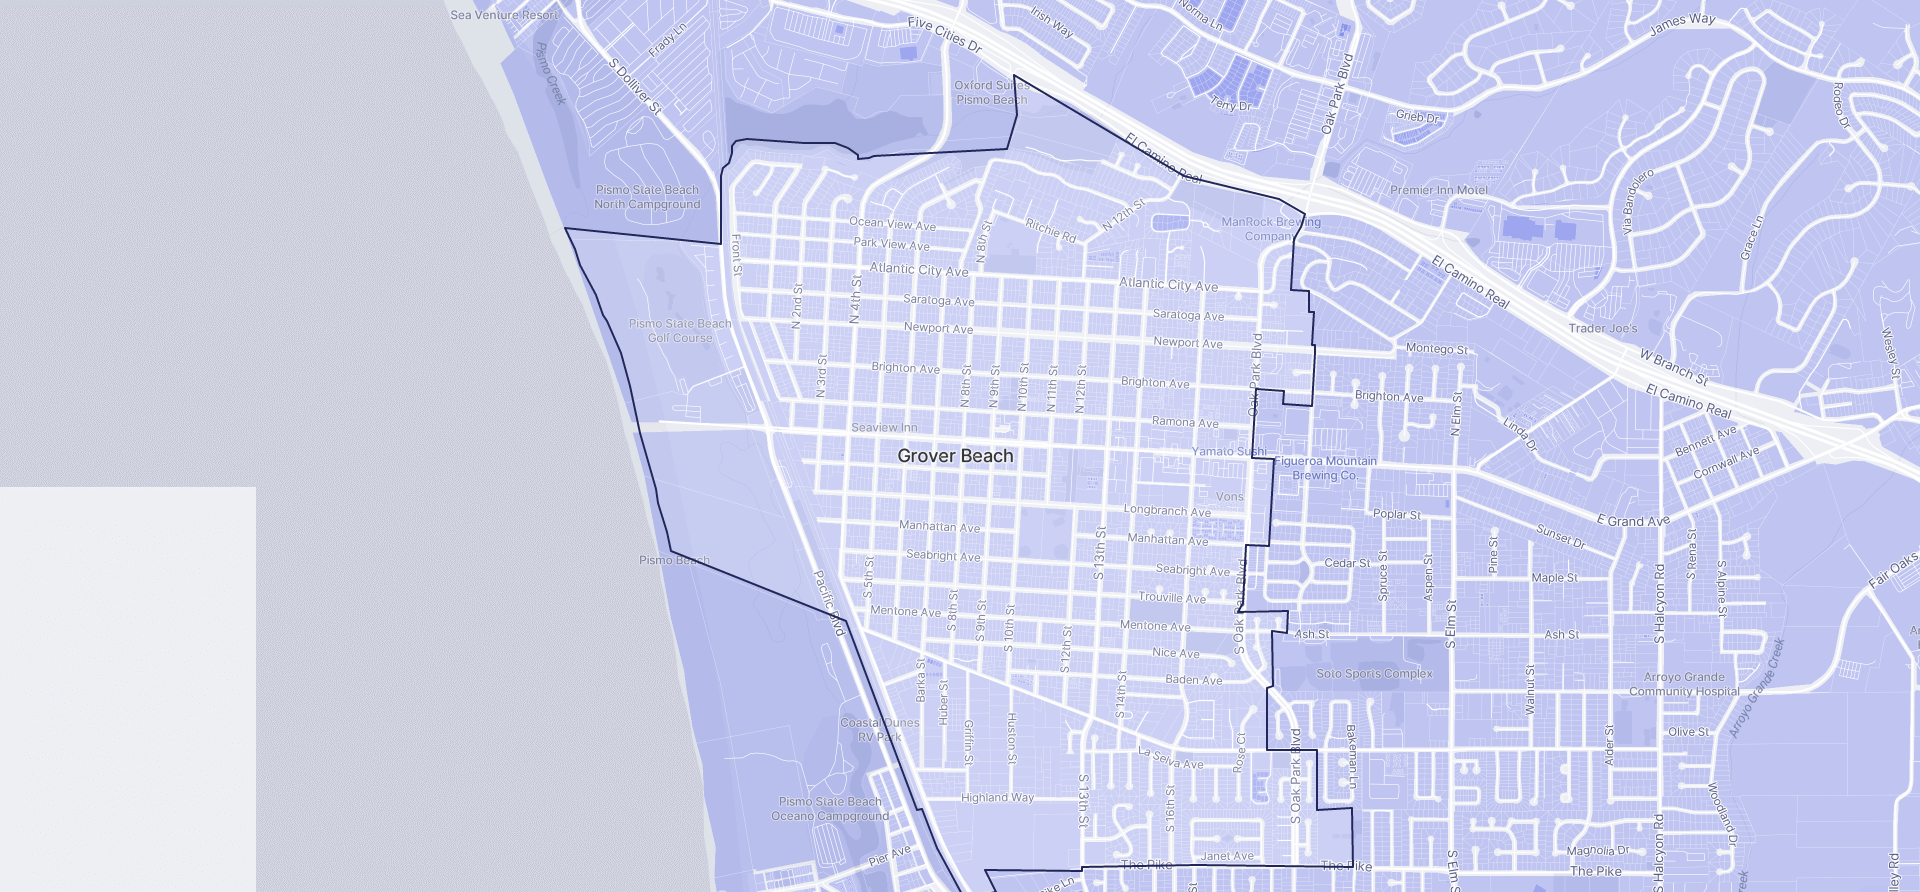 Image of Grover Beach boundaries on a map.